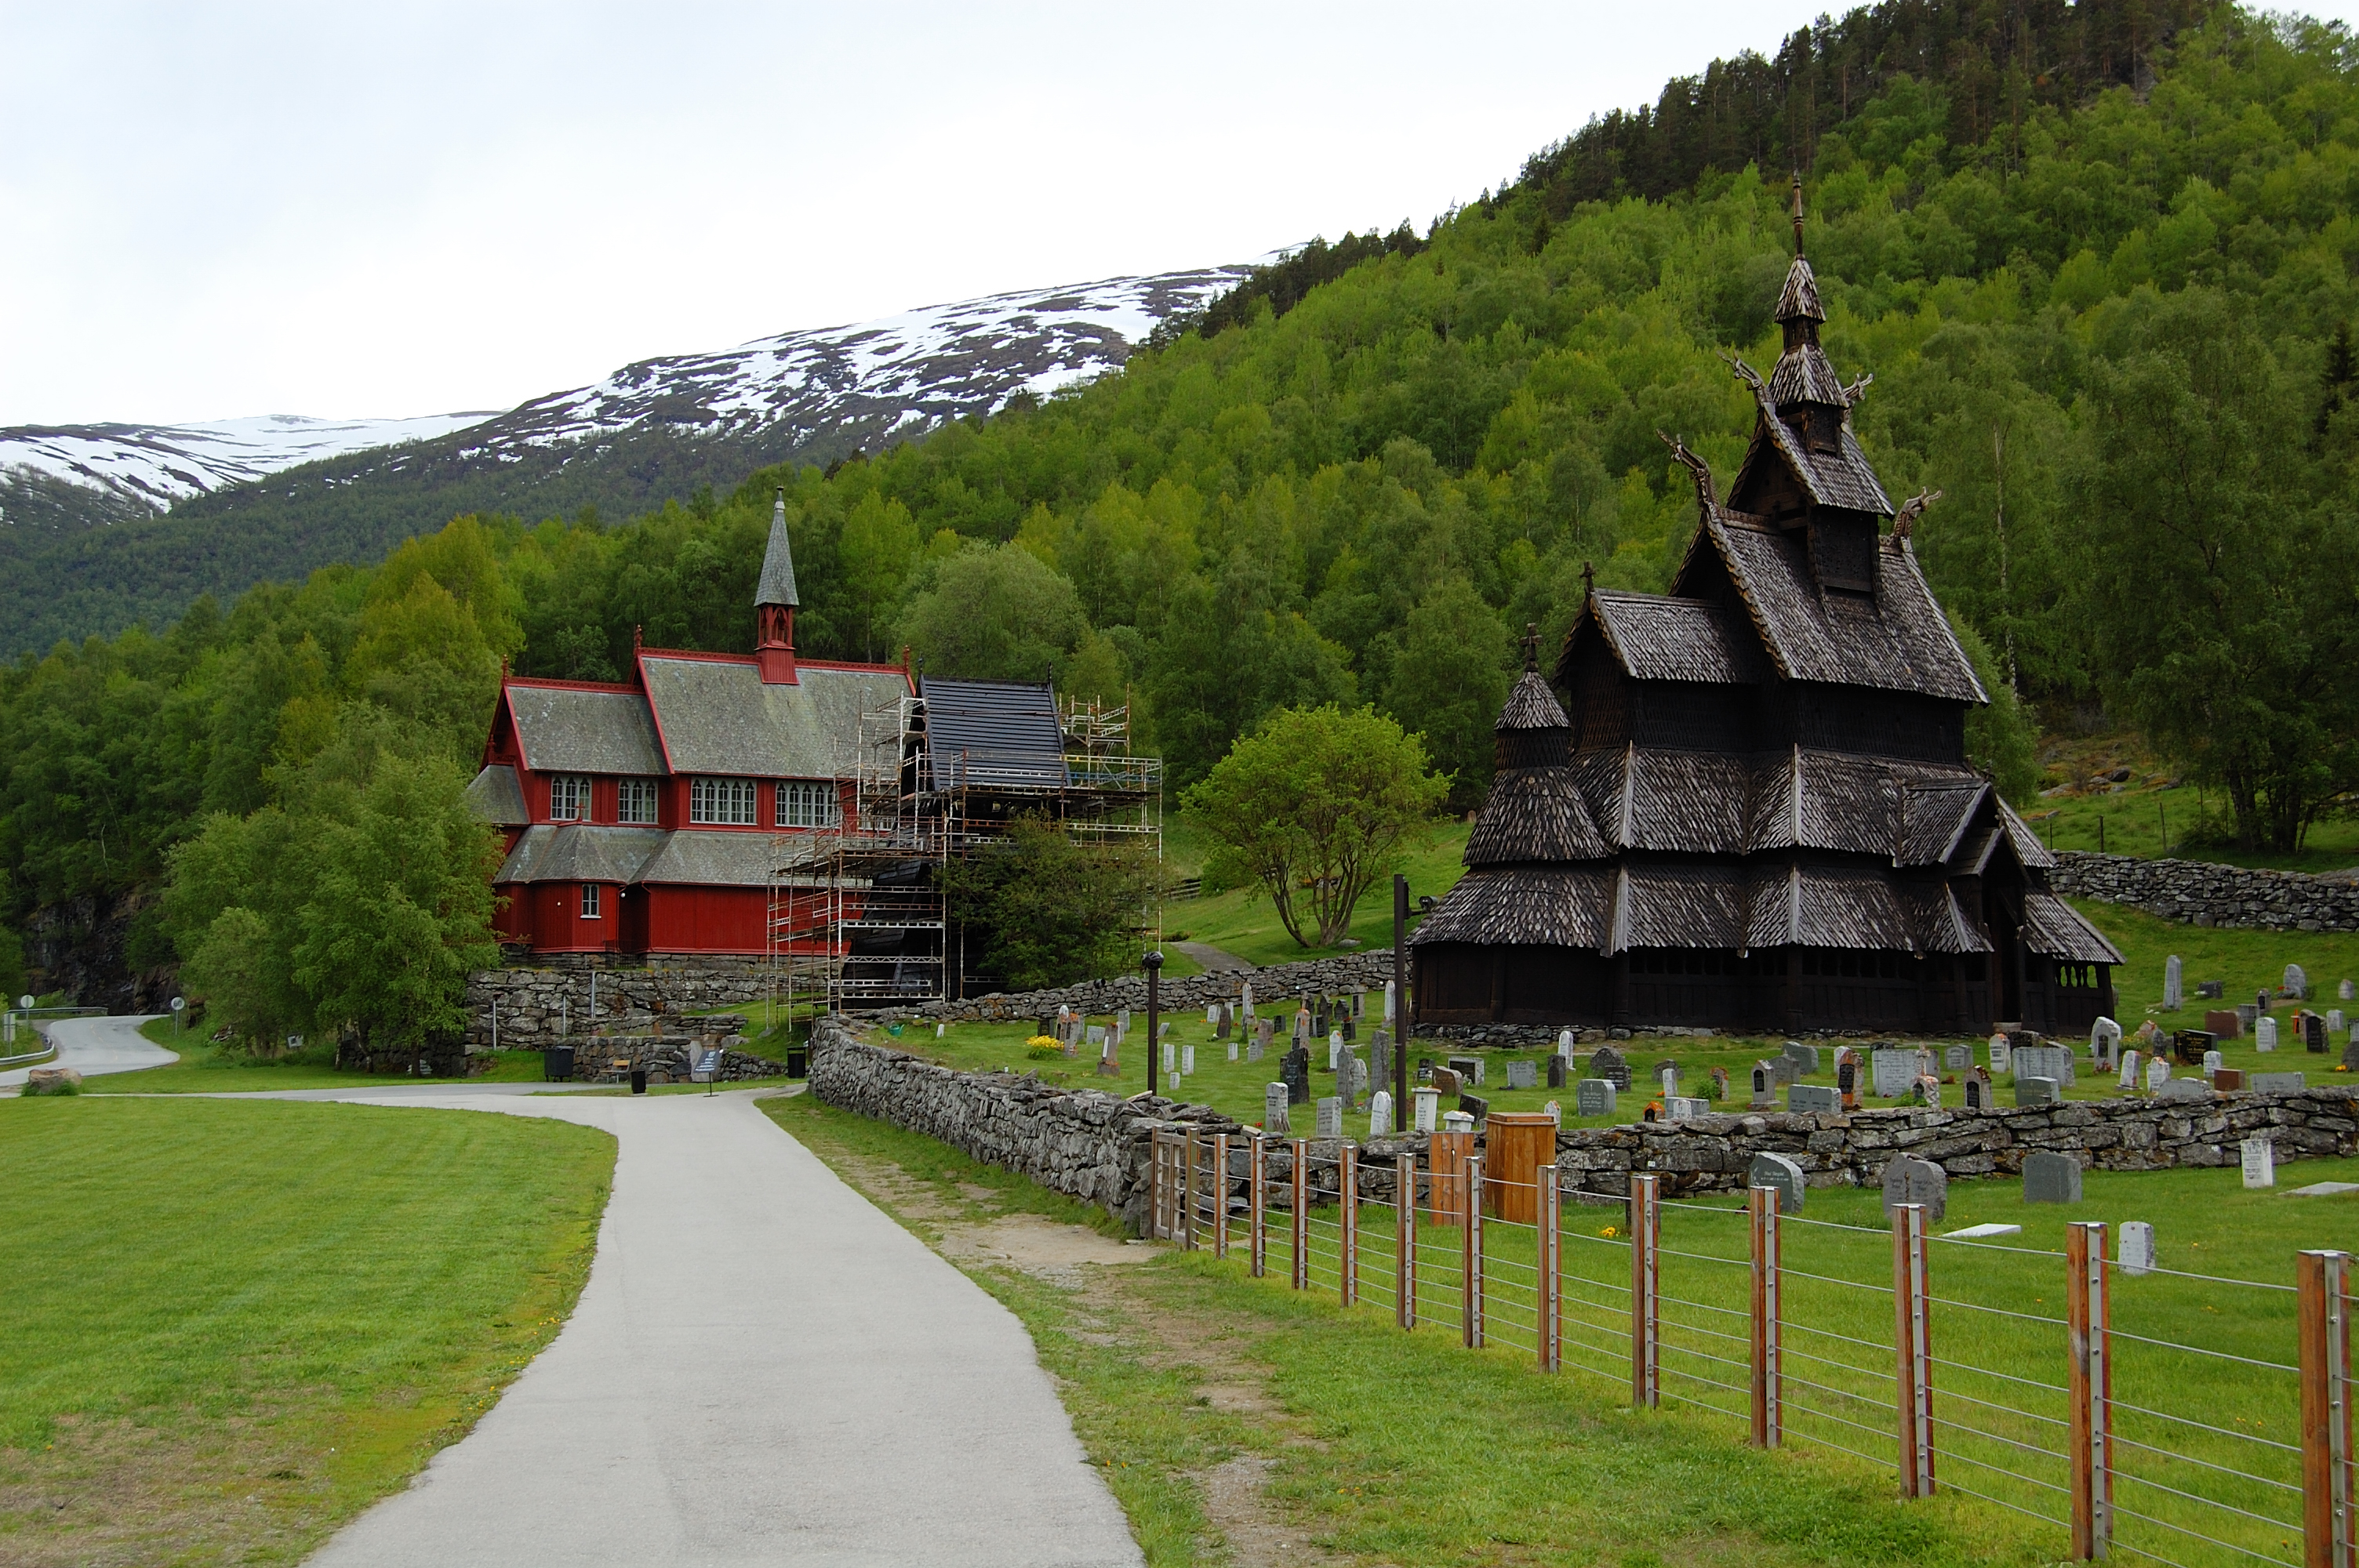 borgund-stave-church-norway-4